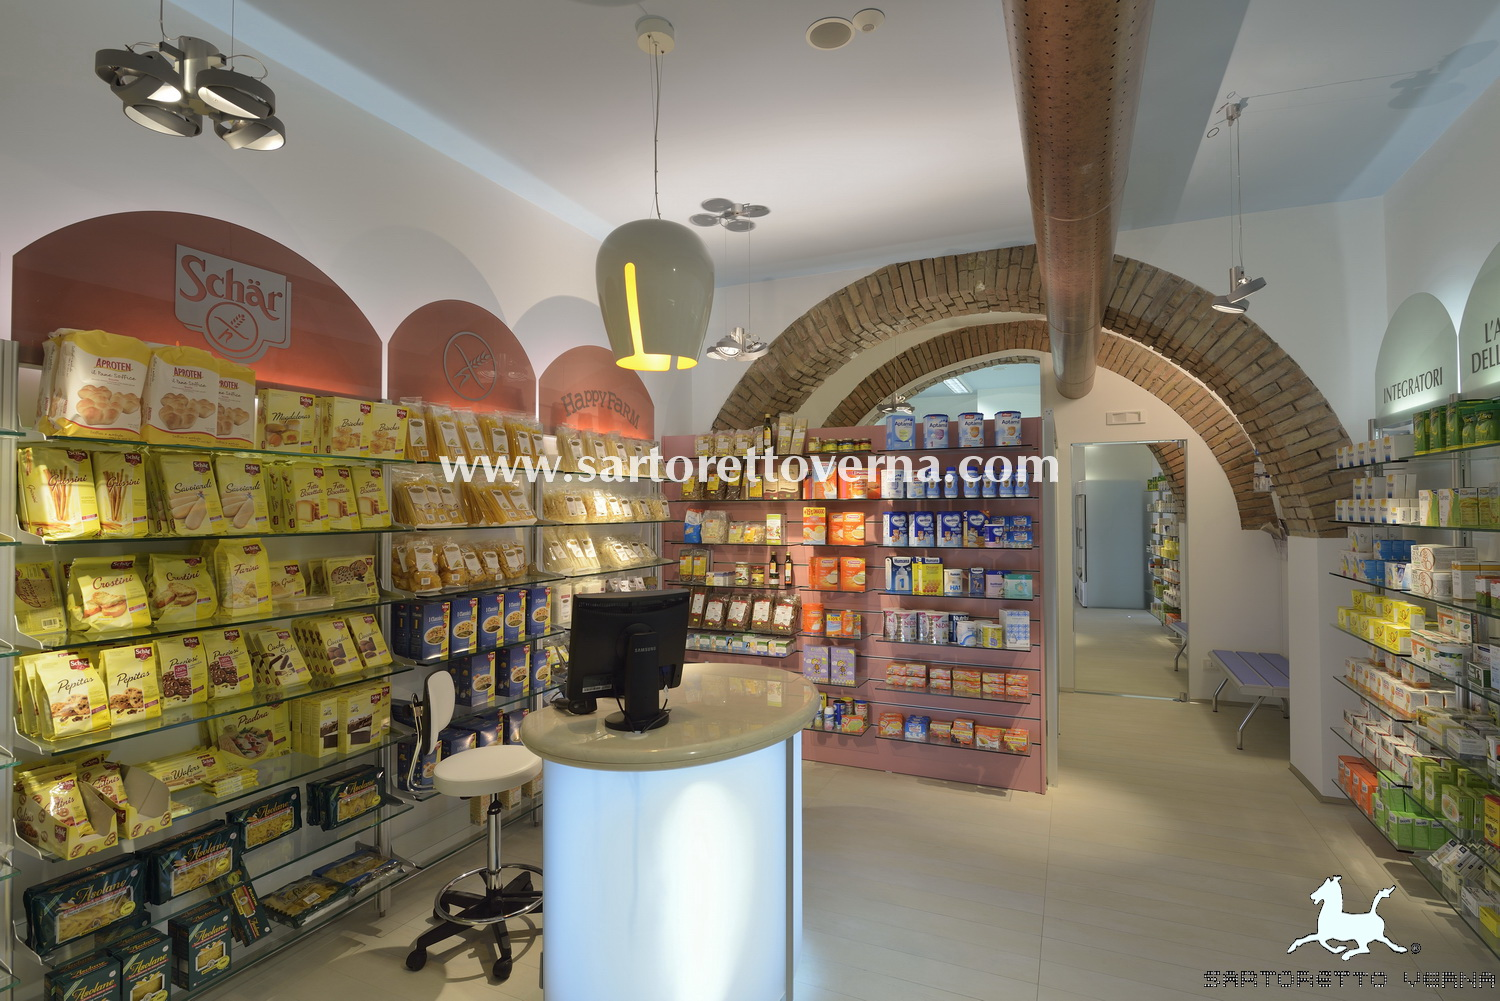 design_farmacie